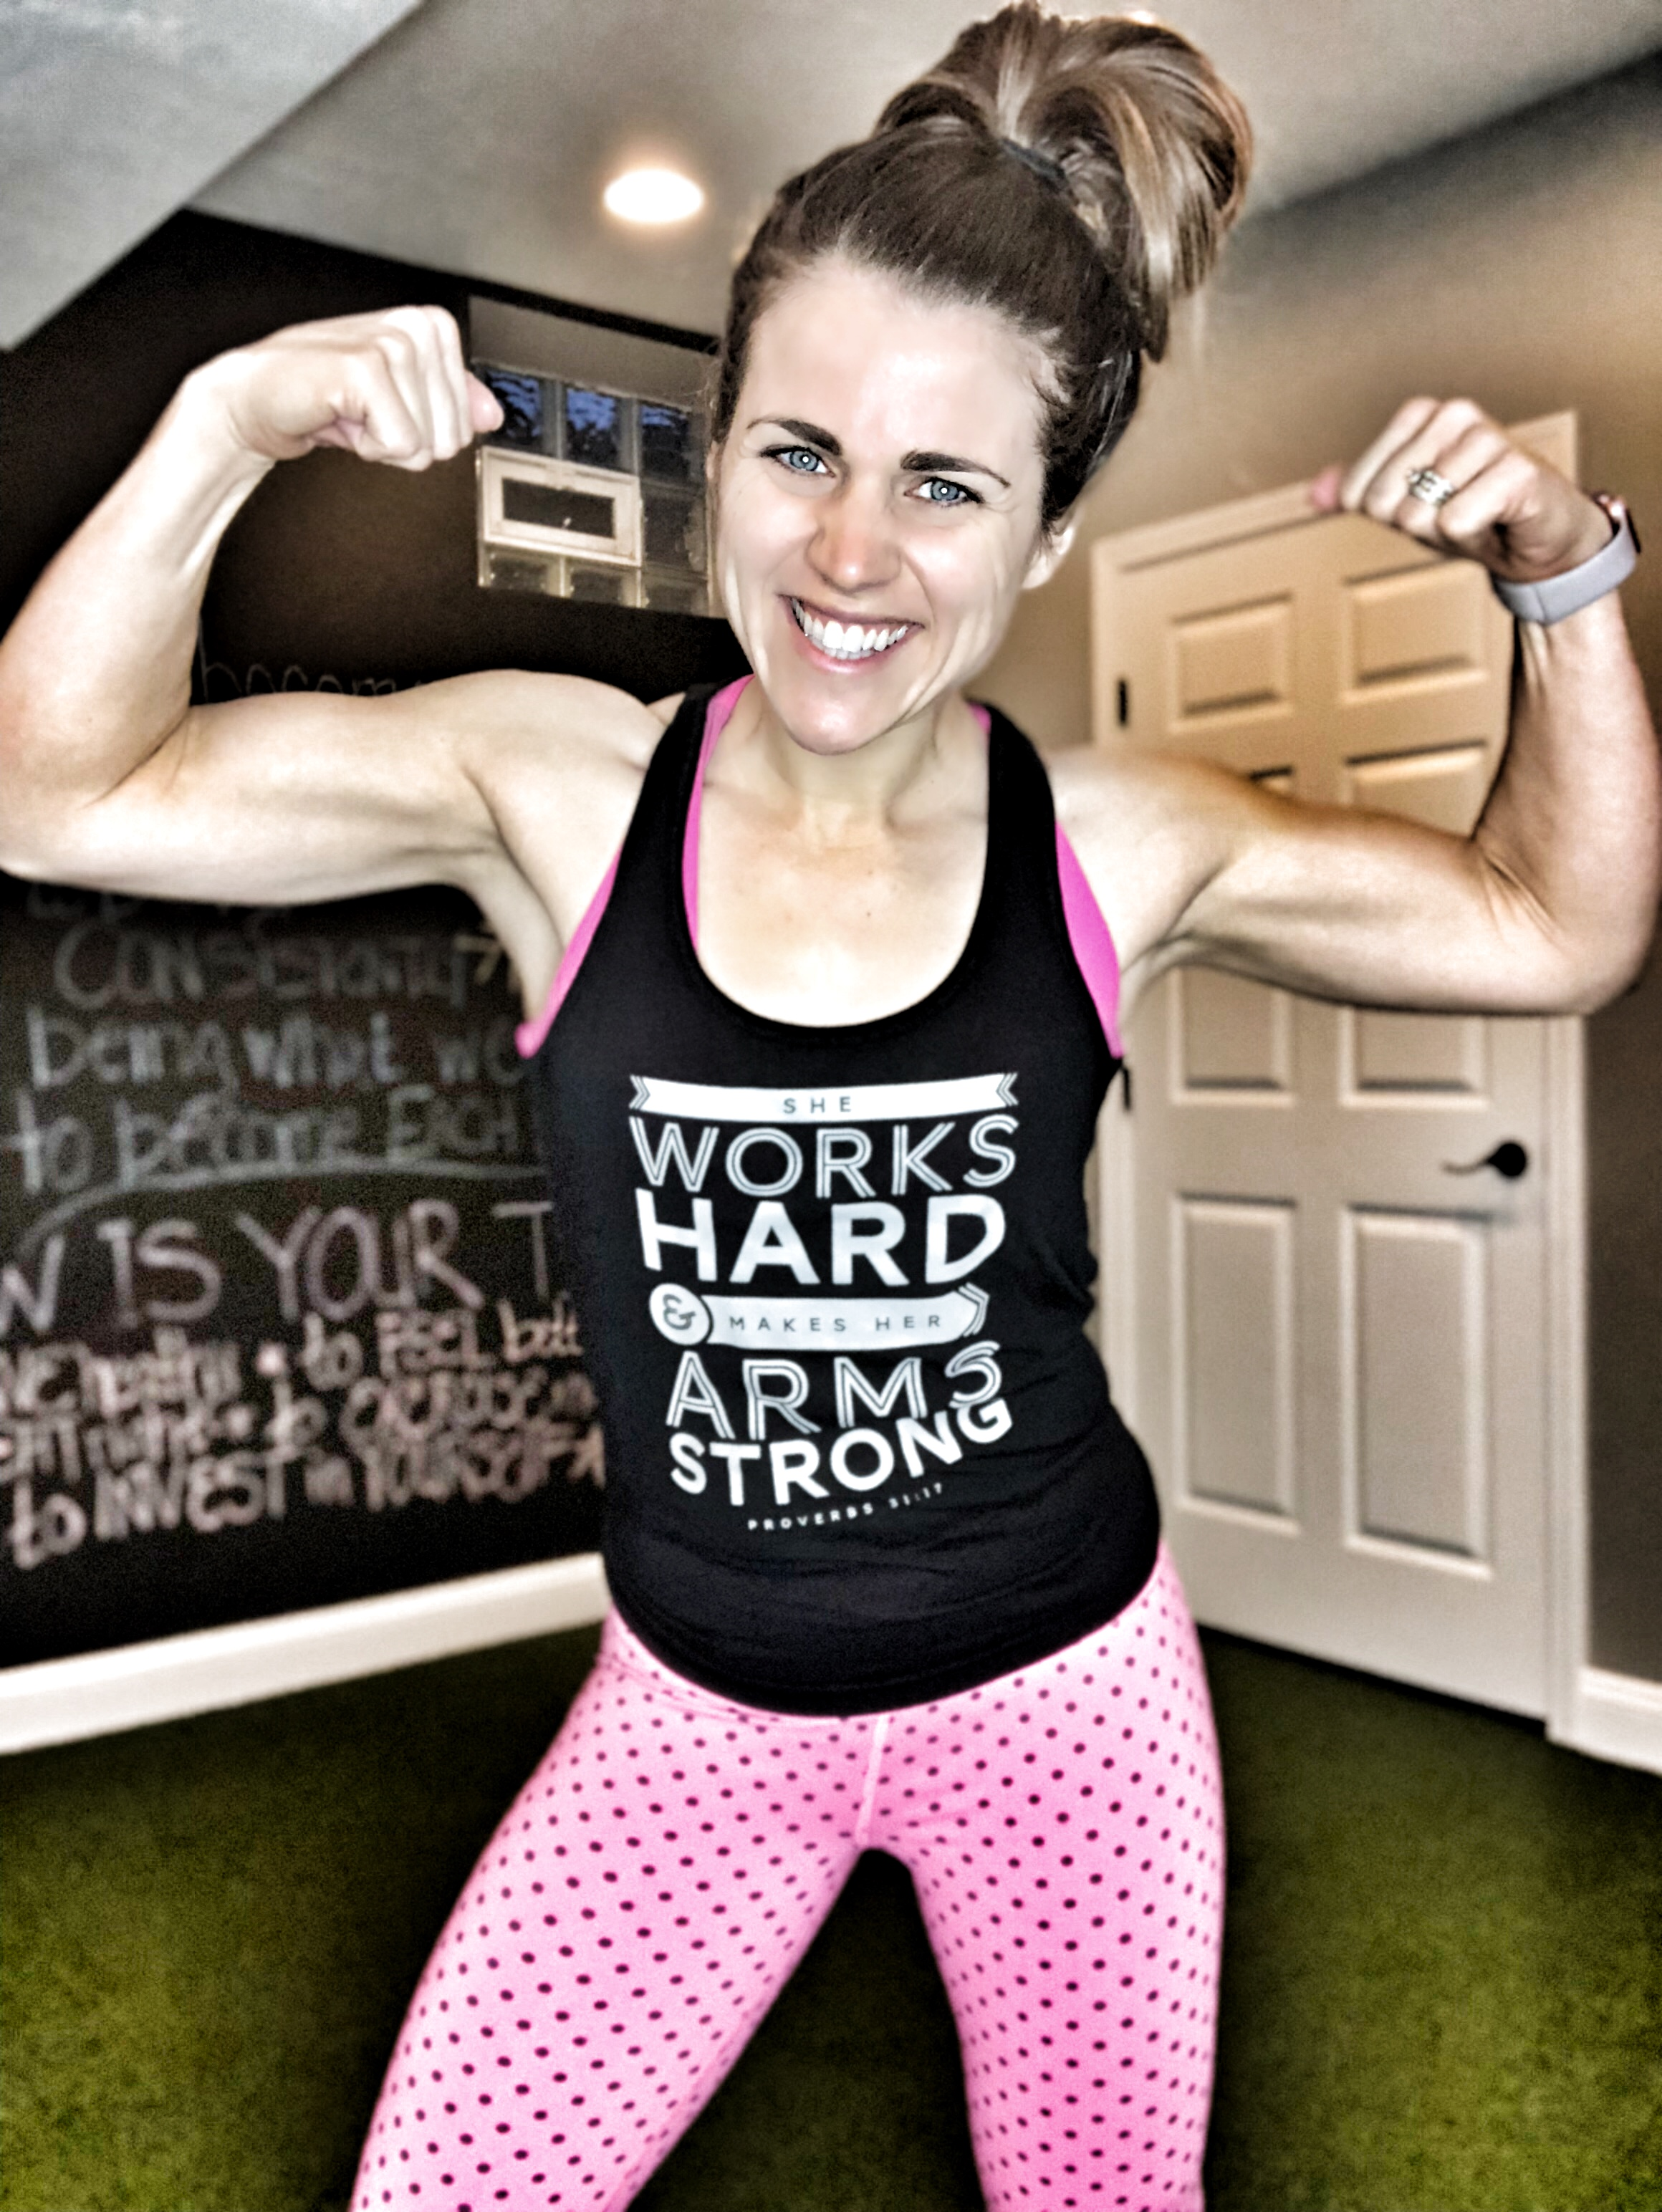 80 day obsession she works hard for her arms strong